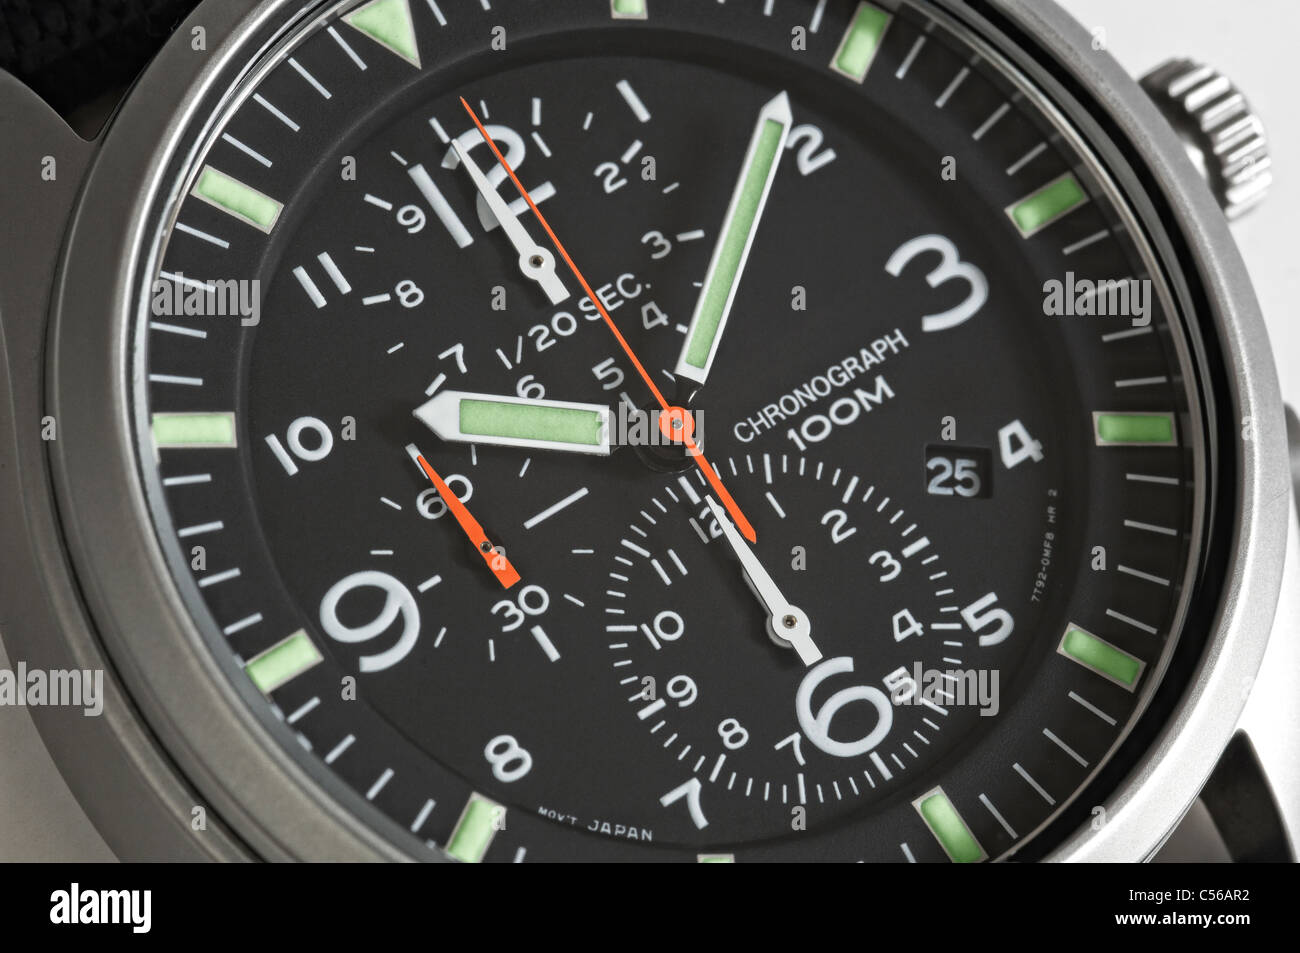 Close up of a Men's chronograph wrist watch - Stock Image